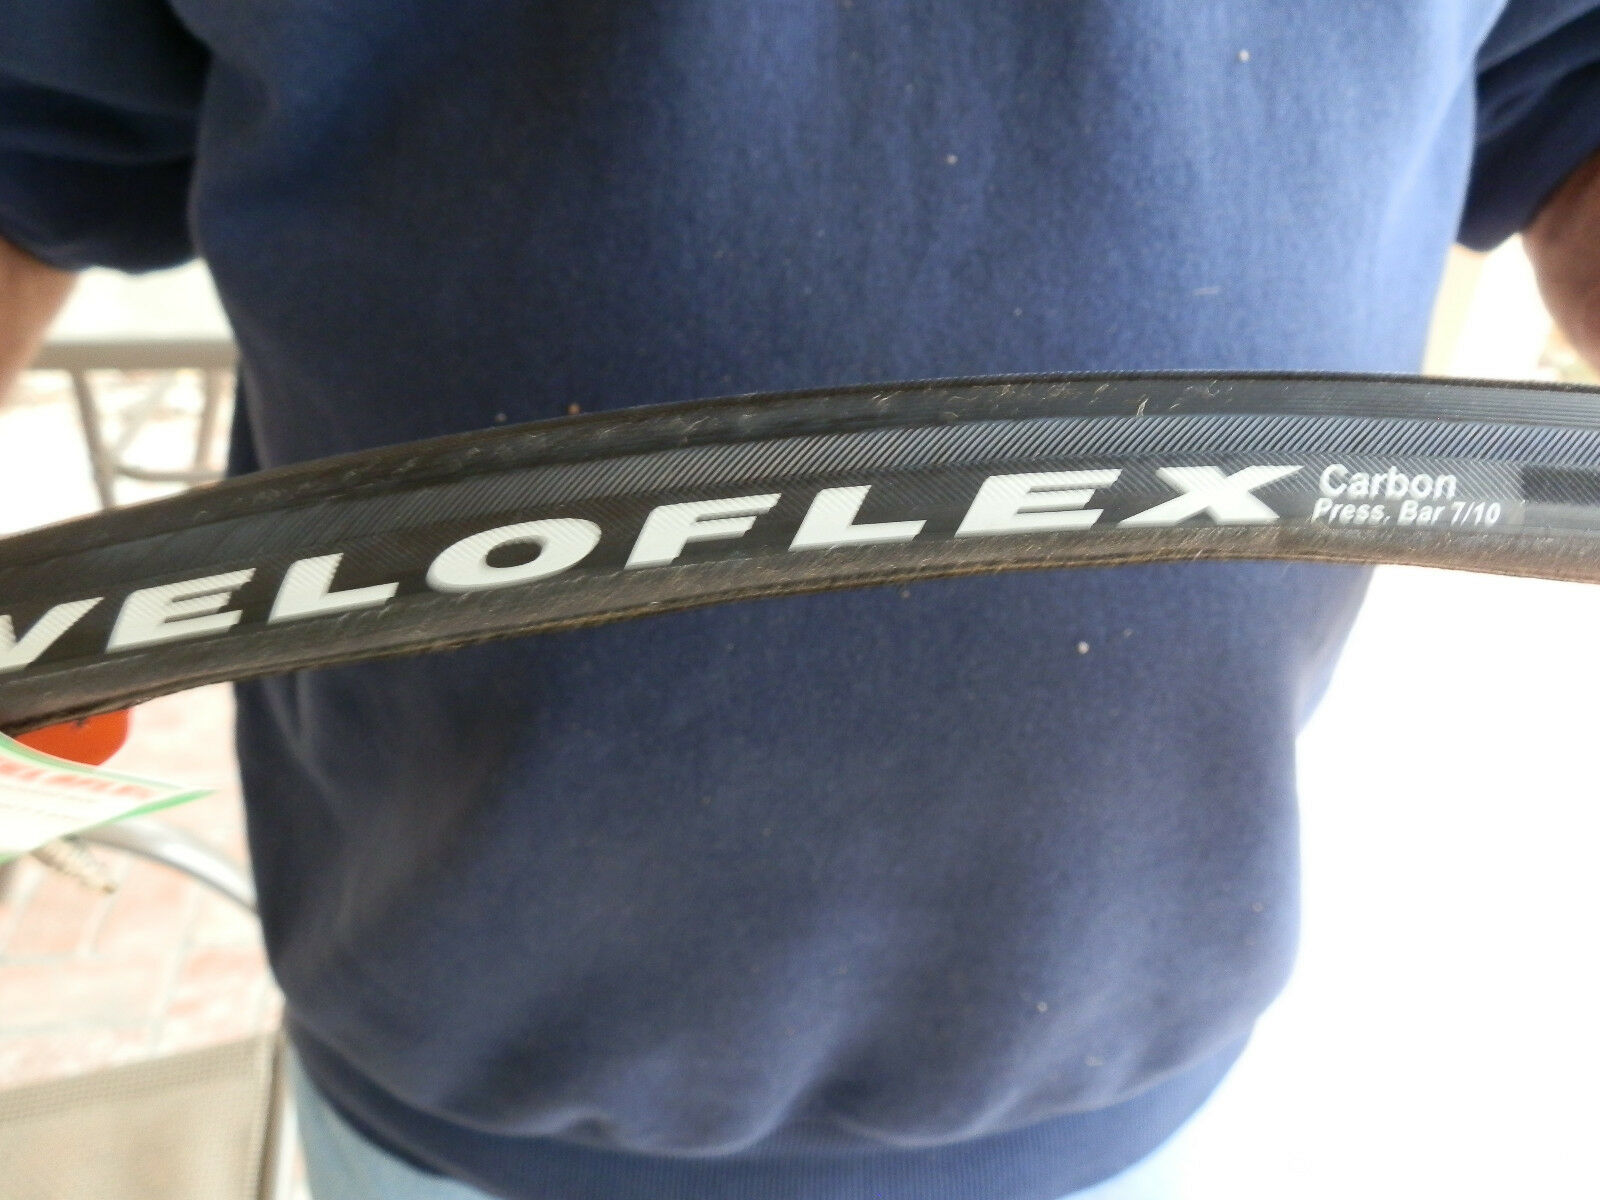 TWO  (   2  )  Veloflex Carbon TUBULAR Tires-FREE SHIPPING  we offer various famous brand